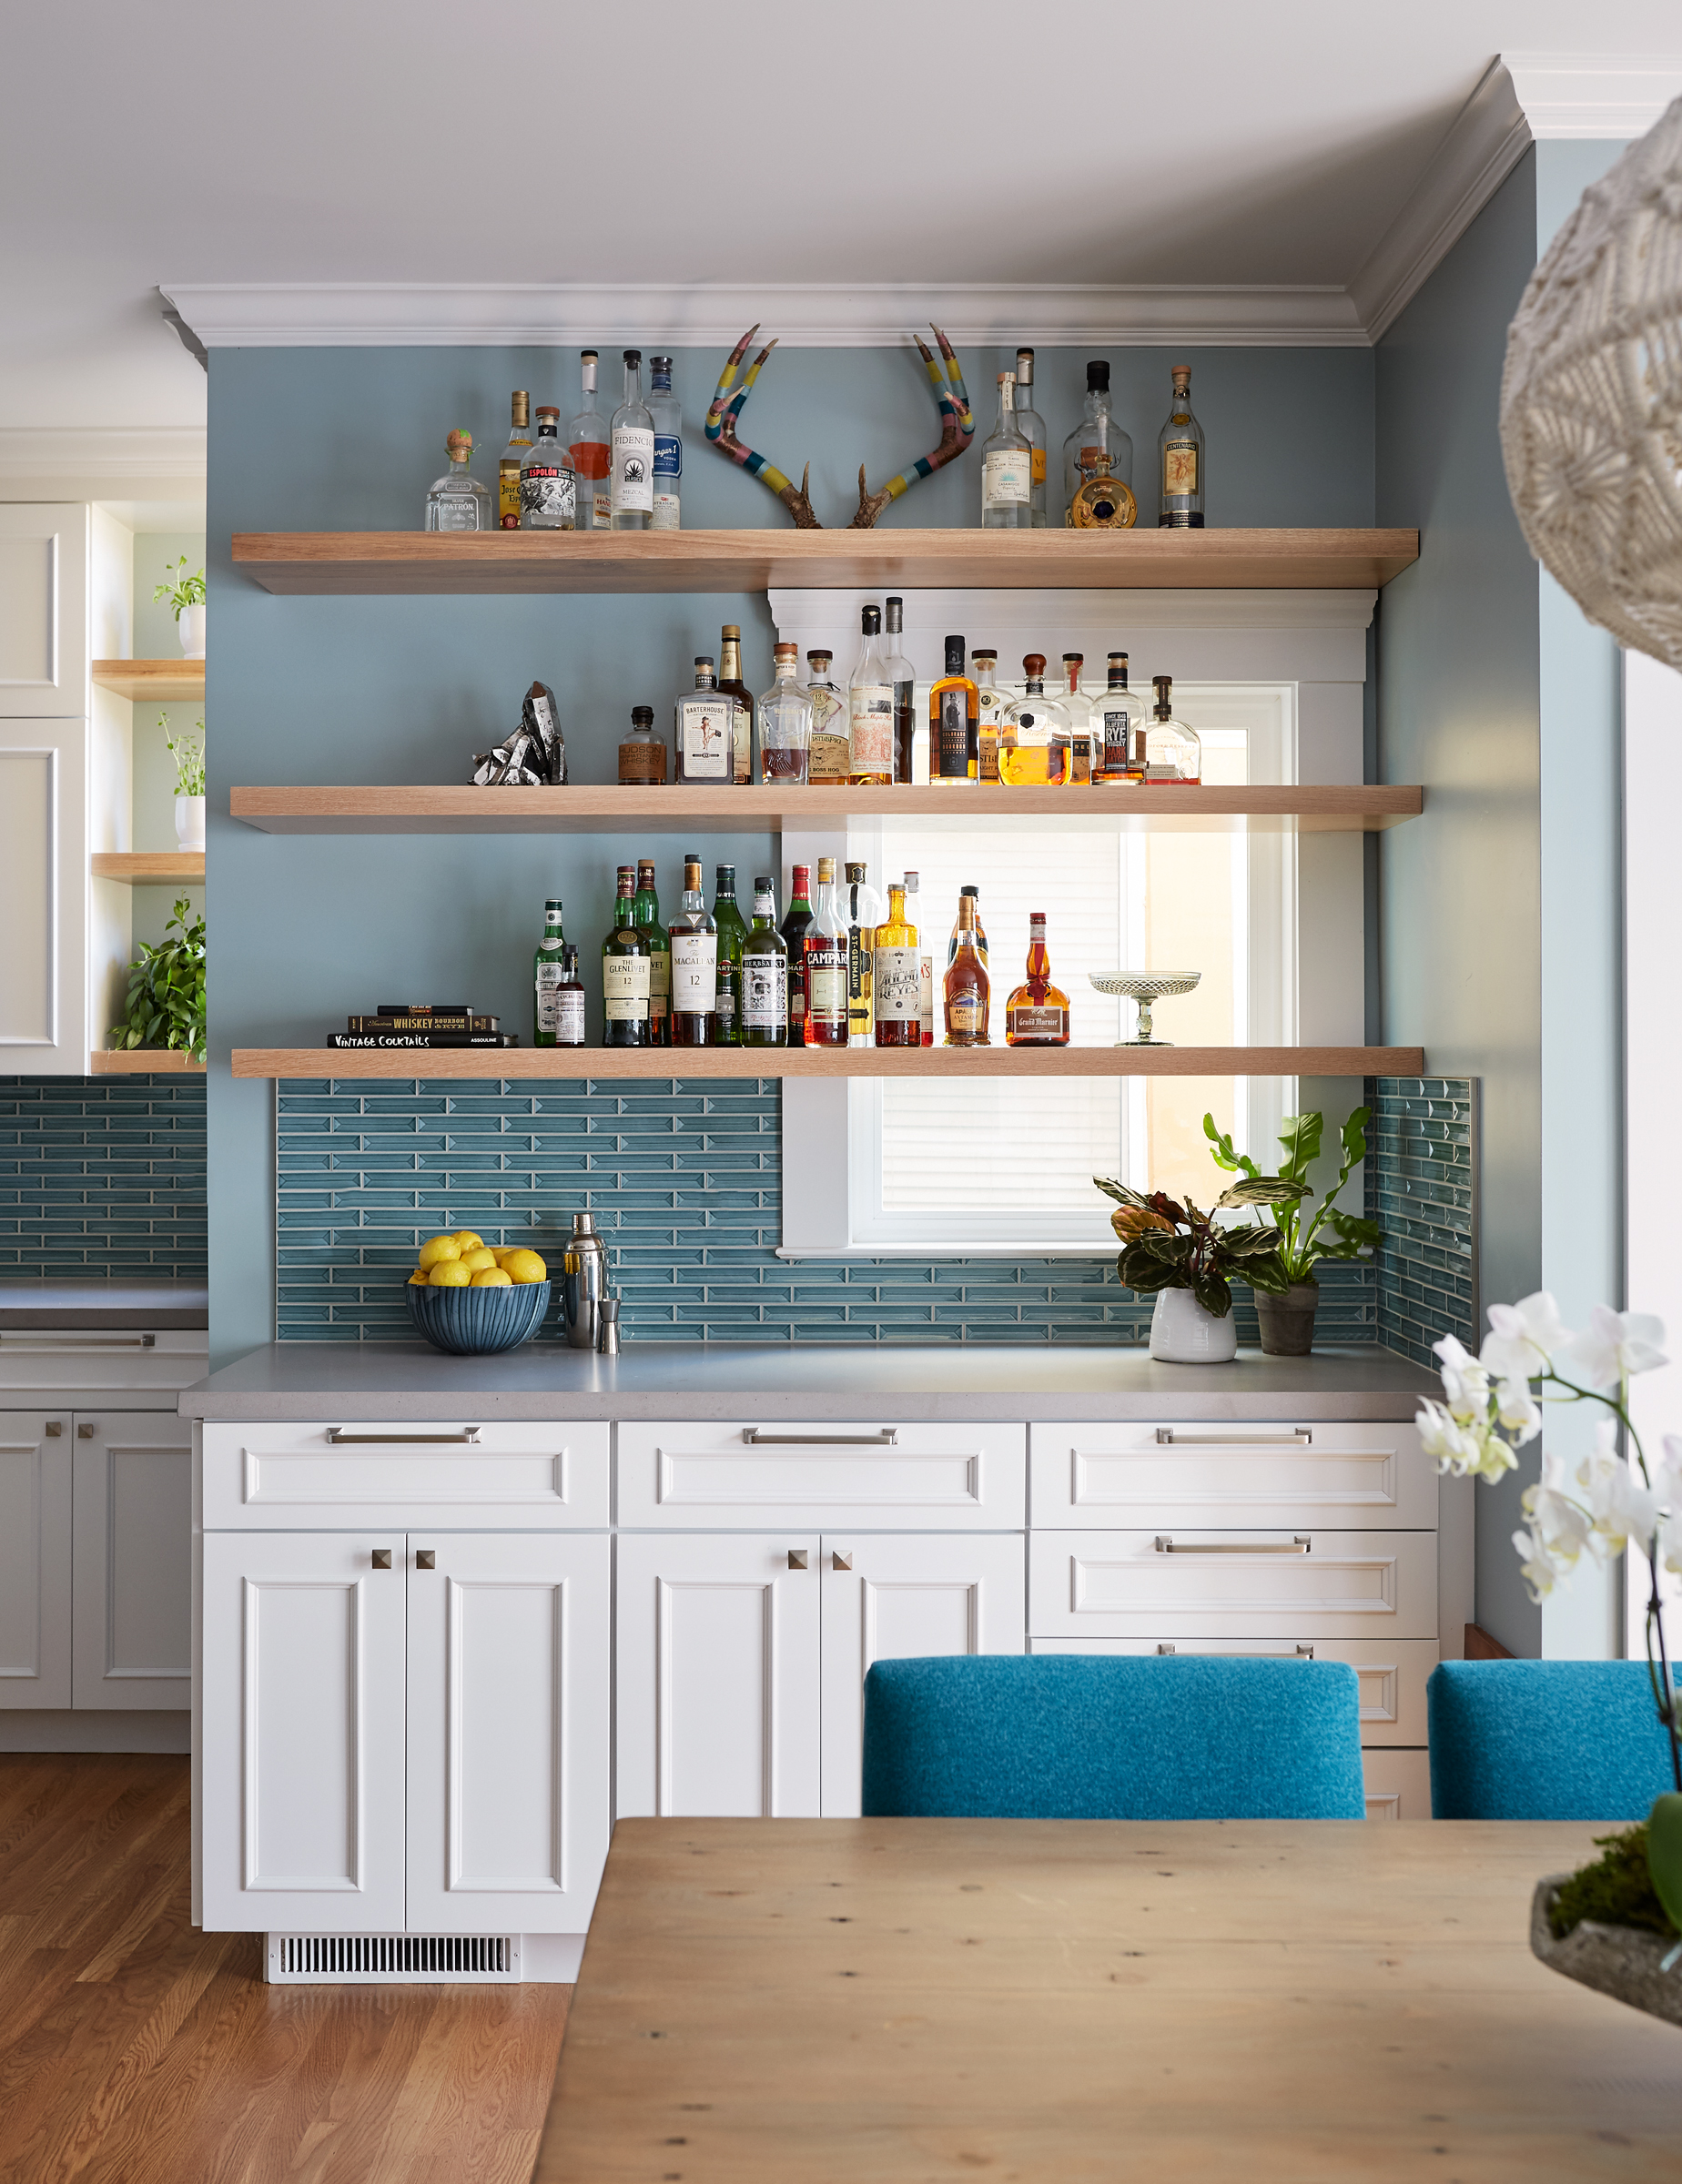 The Kitchen is painted in C2's Cadeau, the globe pendant lights are by Rejuvenation, the backsplash is in Global Tile Design's Half Baked, and the counters are Caesarstone in sleek concrete. Photography by John Merkl.